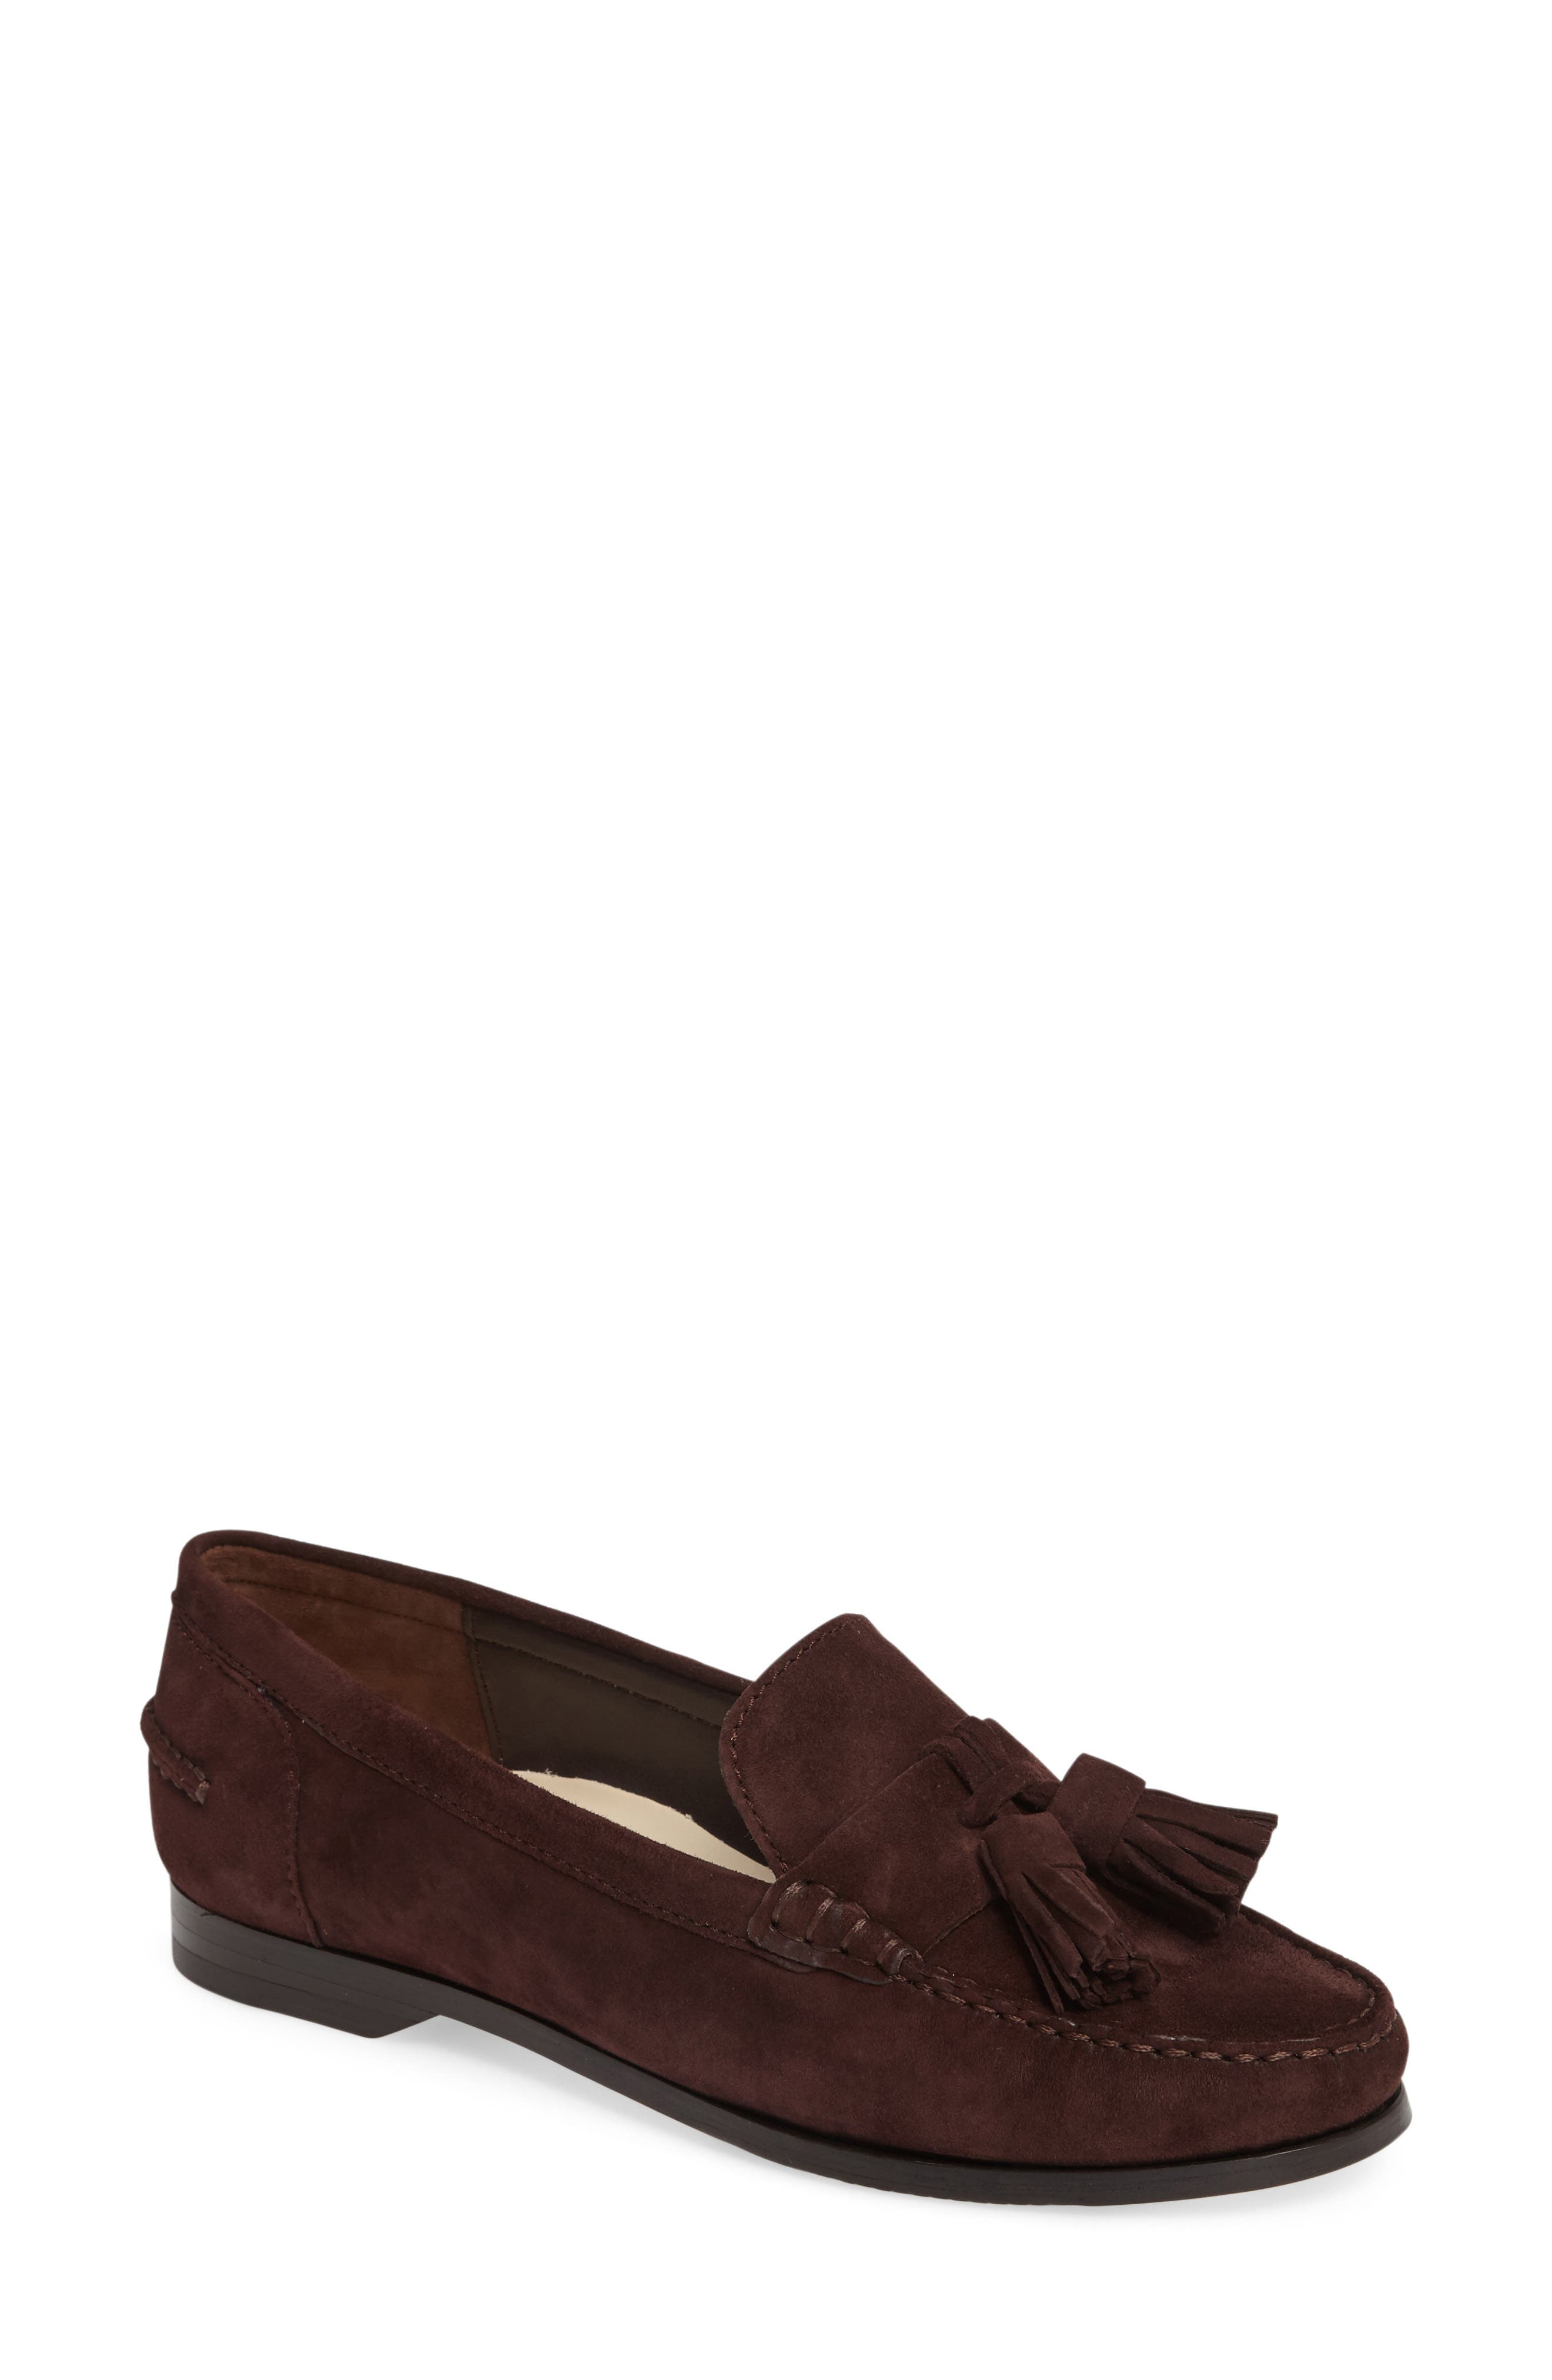 'Pinch Grand' Tassel Loafer,                             Main thumbnail 1, color,                             200